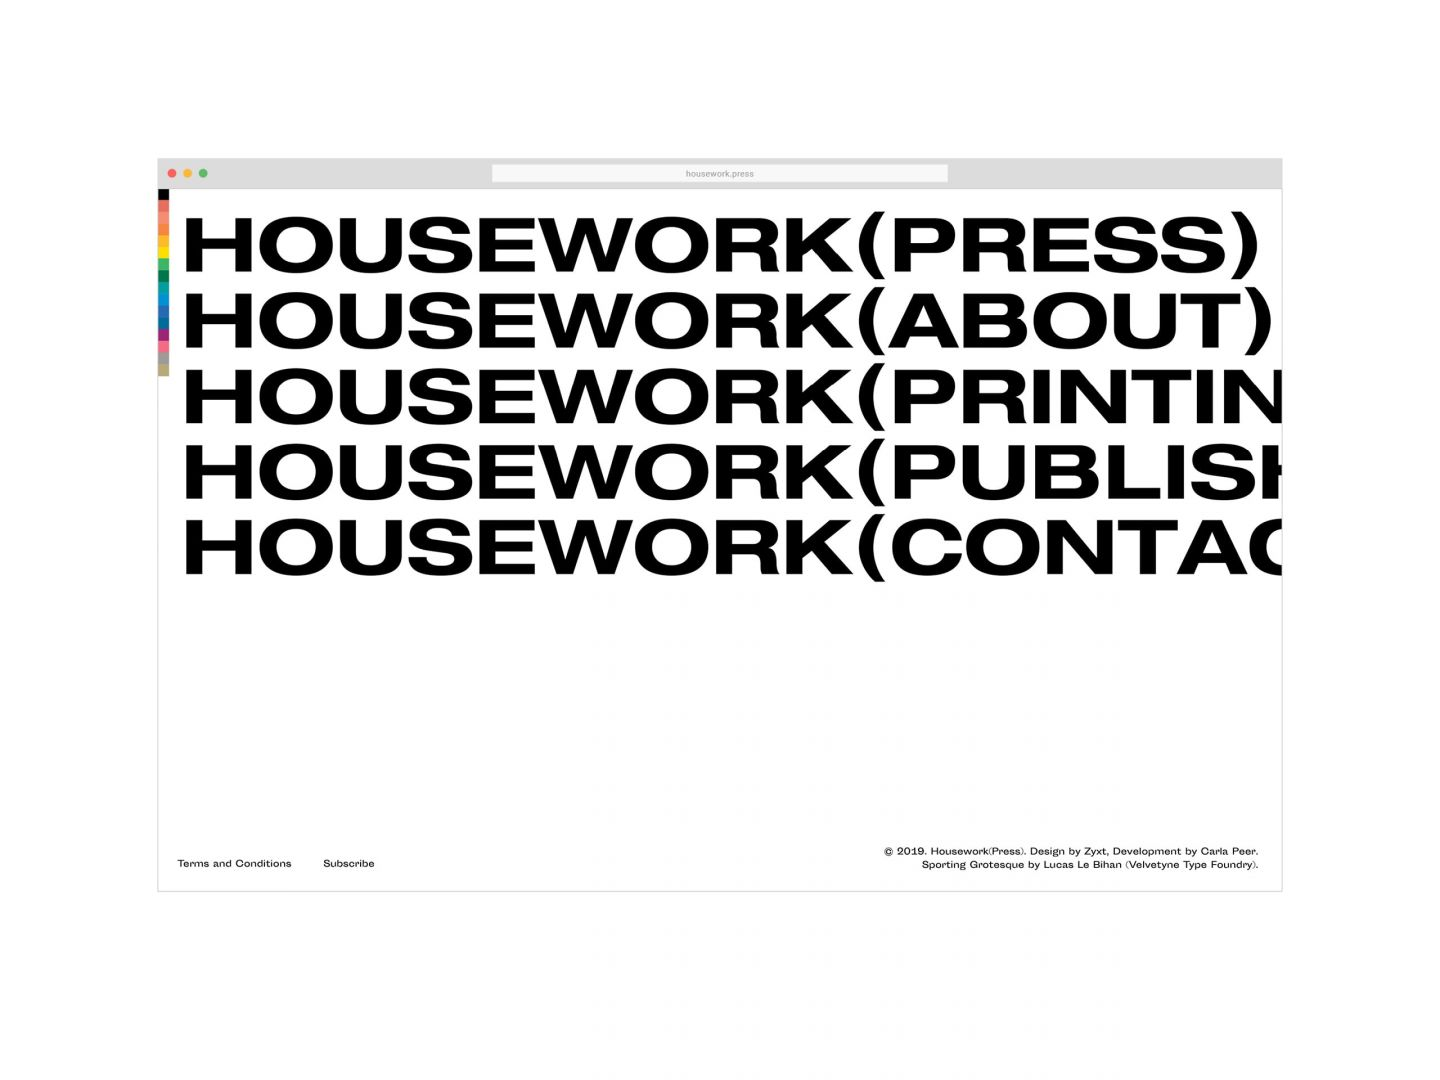 Zyxt_HouseworkPress_Identity-Design_4